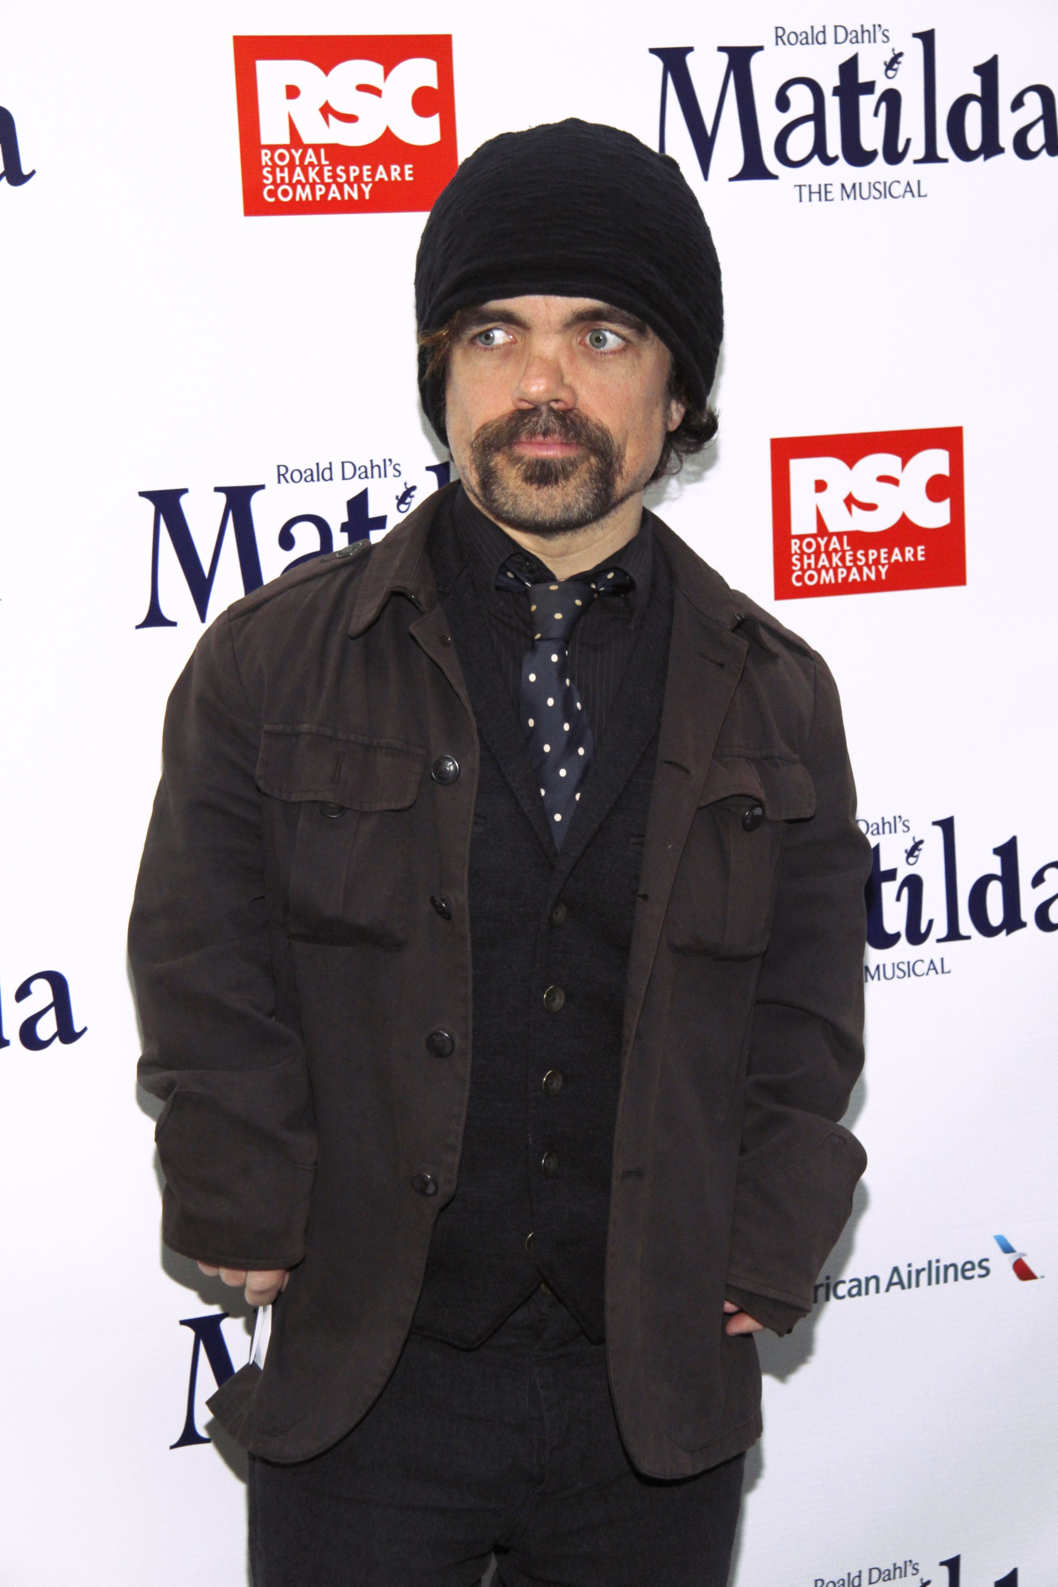 Peter Dinklage==Opening Night for Matilda The Musical==Shubert Theatre, NY==April 11, 2013.